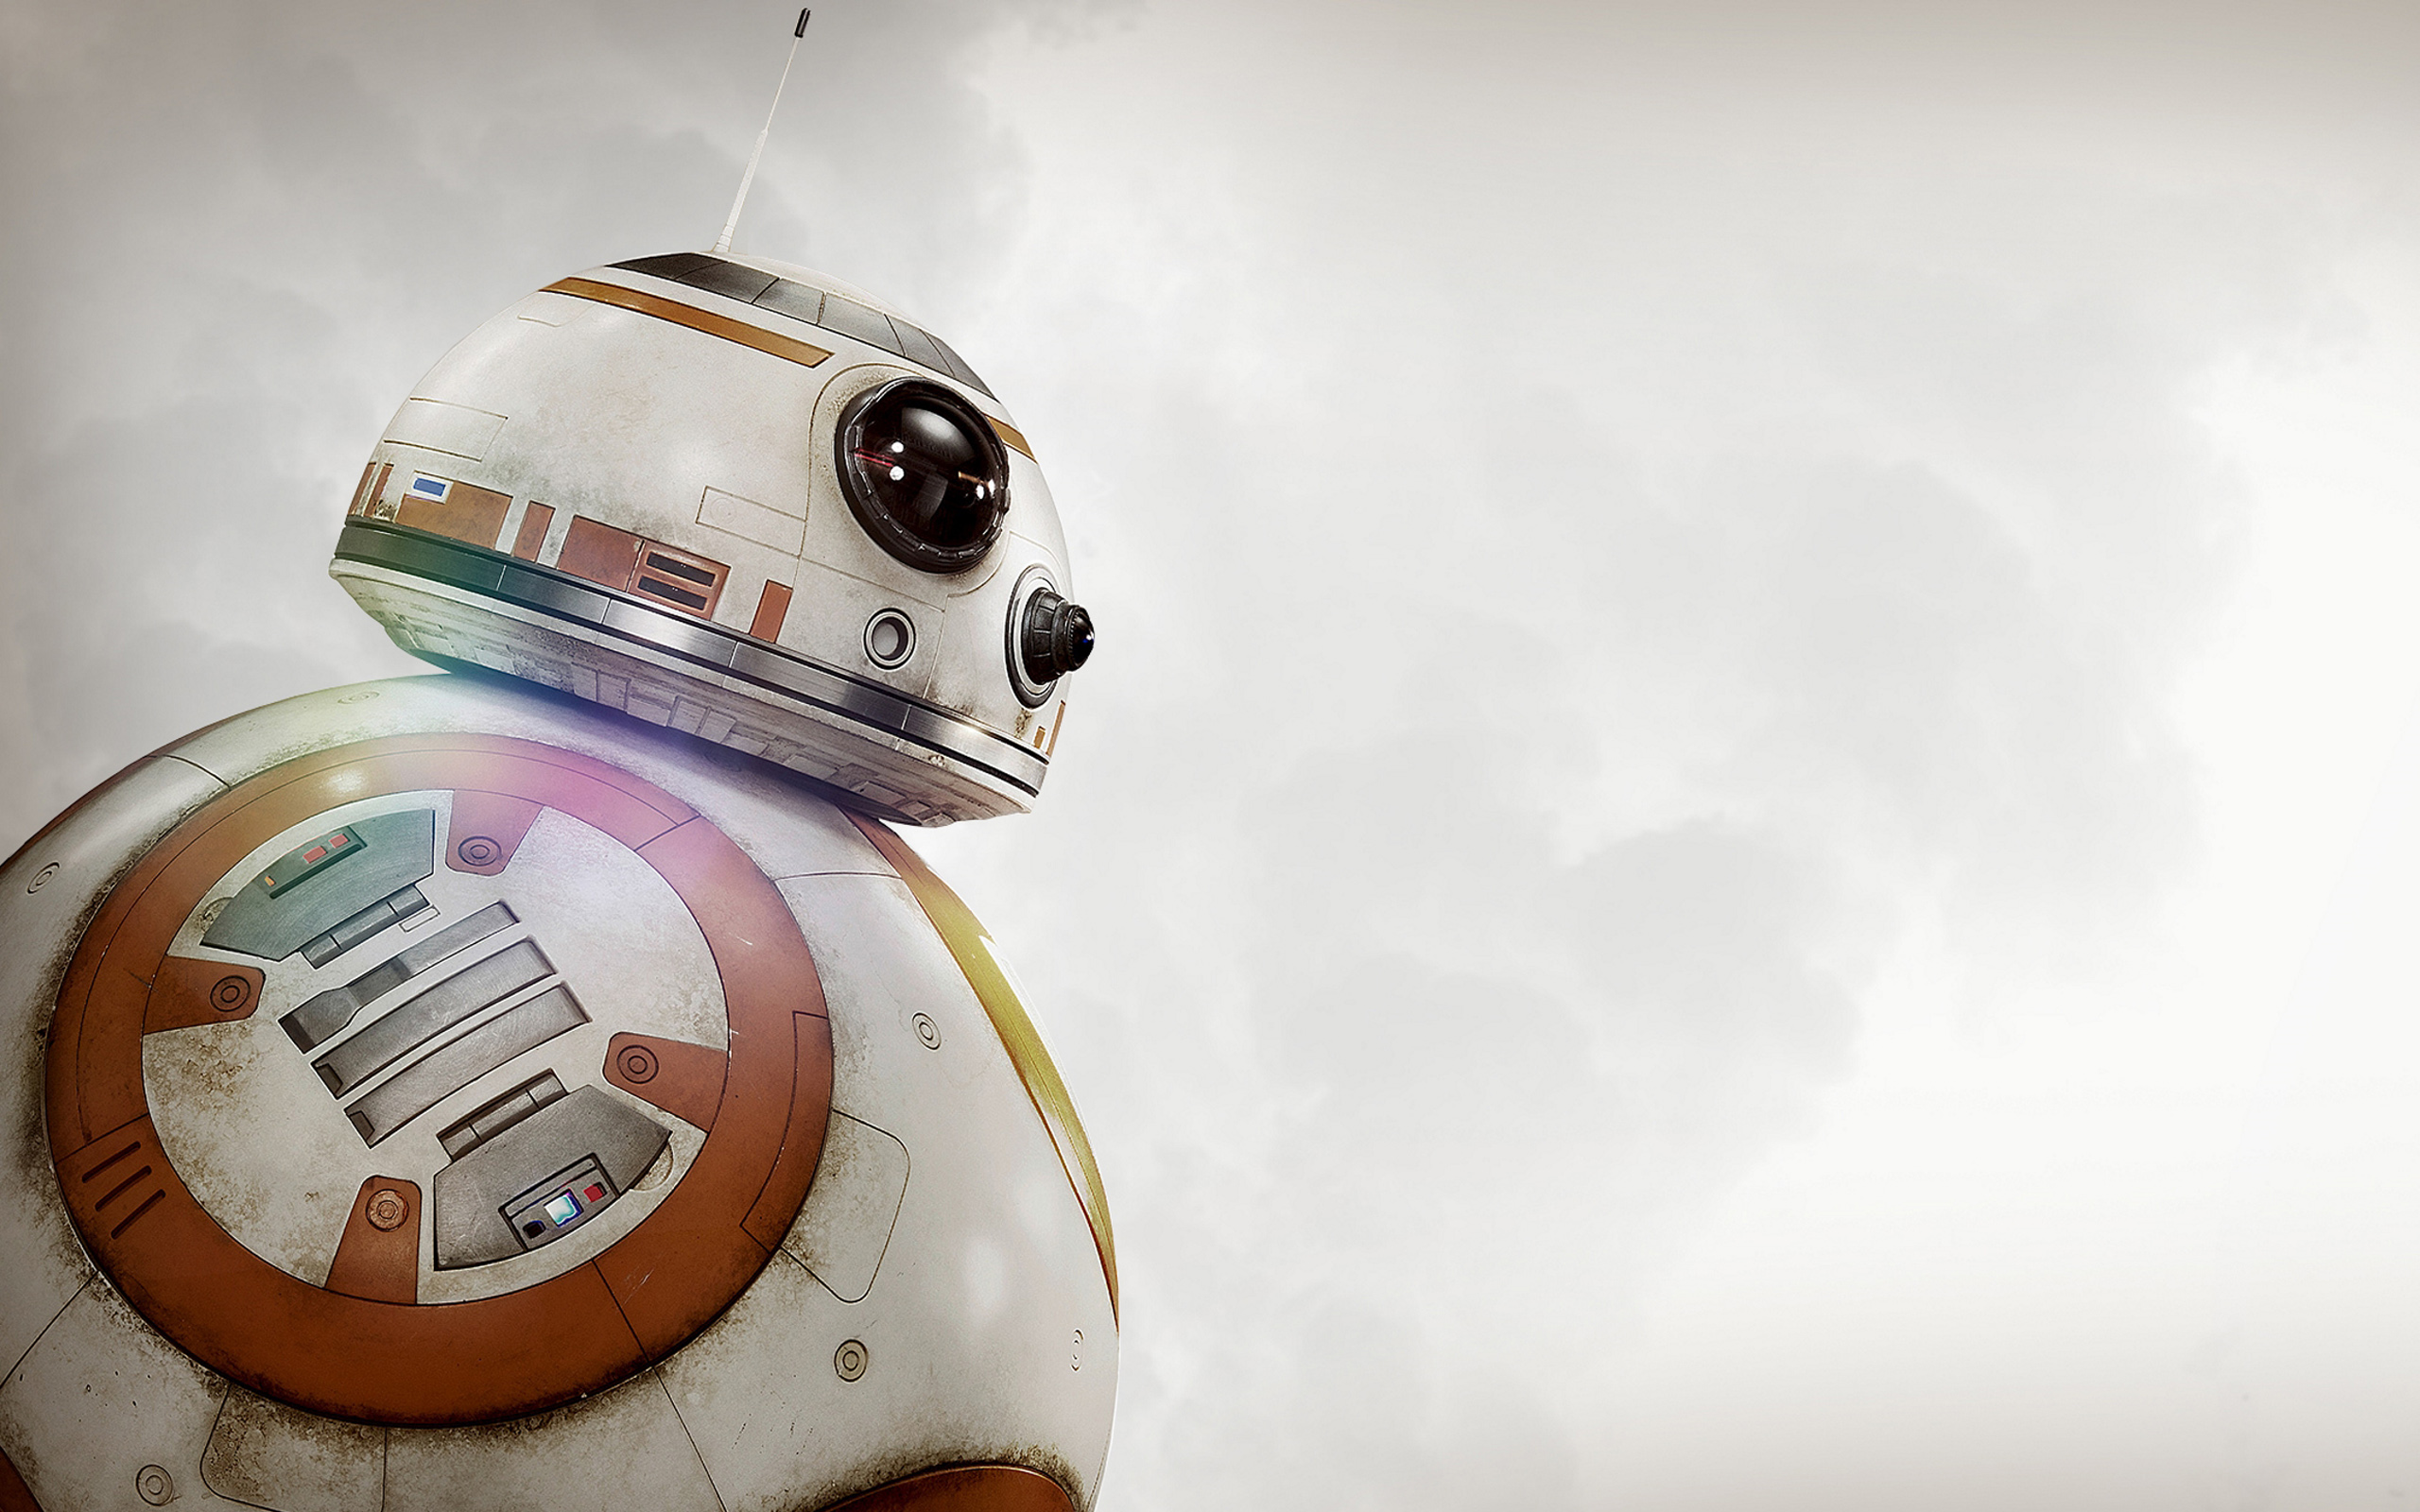 bb8 wallpaper hd - photo #1